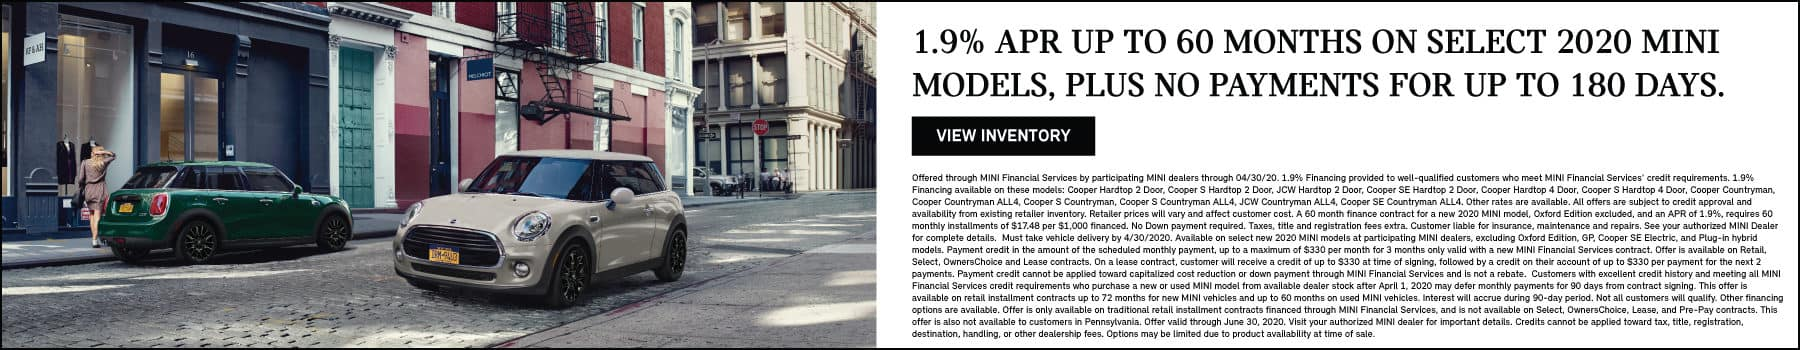 1.9% APR up to 60 months on select 2020 MINI models, plus no payments for up to 180 days. View Inventory button. MINI Cooper Hardtop 2 door and 4 door parked on road.